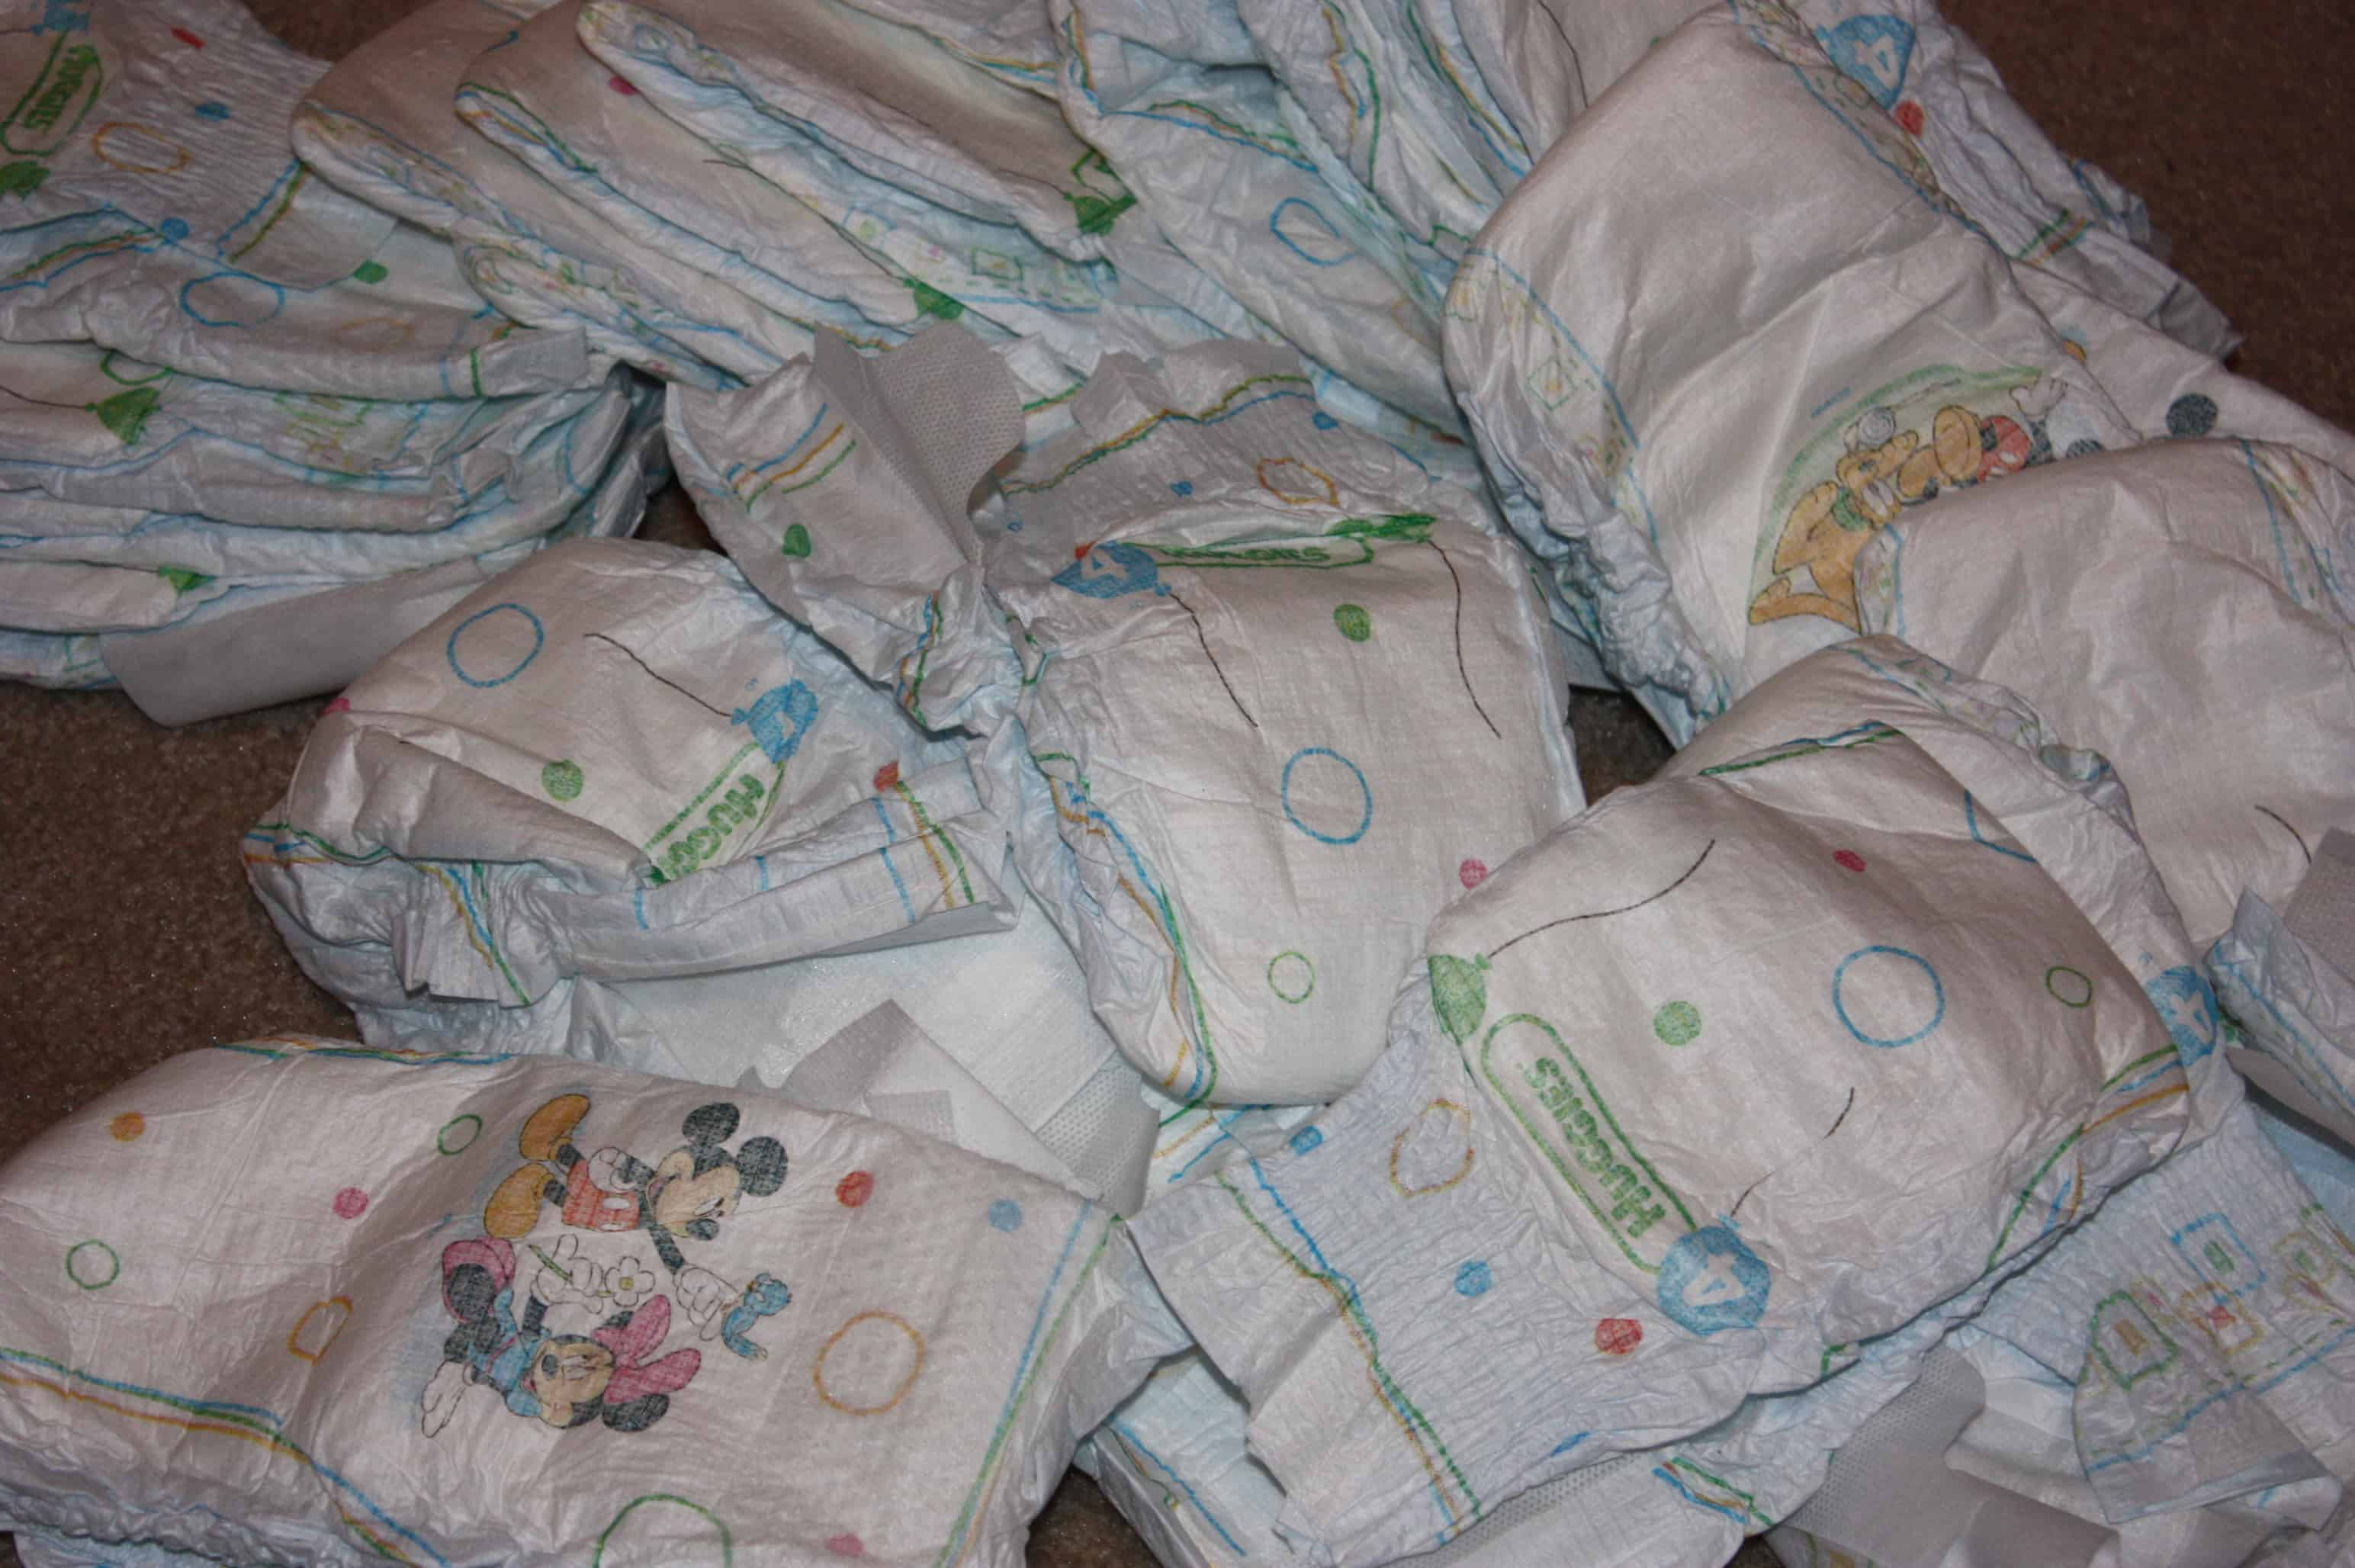 Parenting Twin Toddlers and a Mess of Diapers